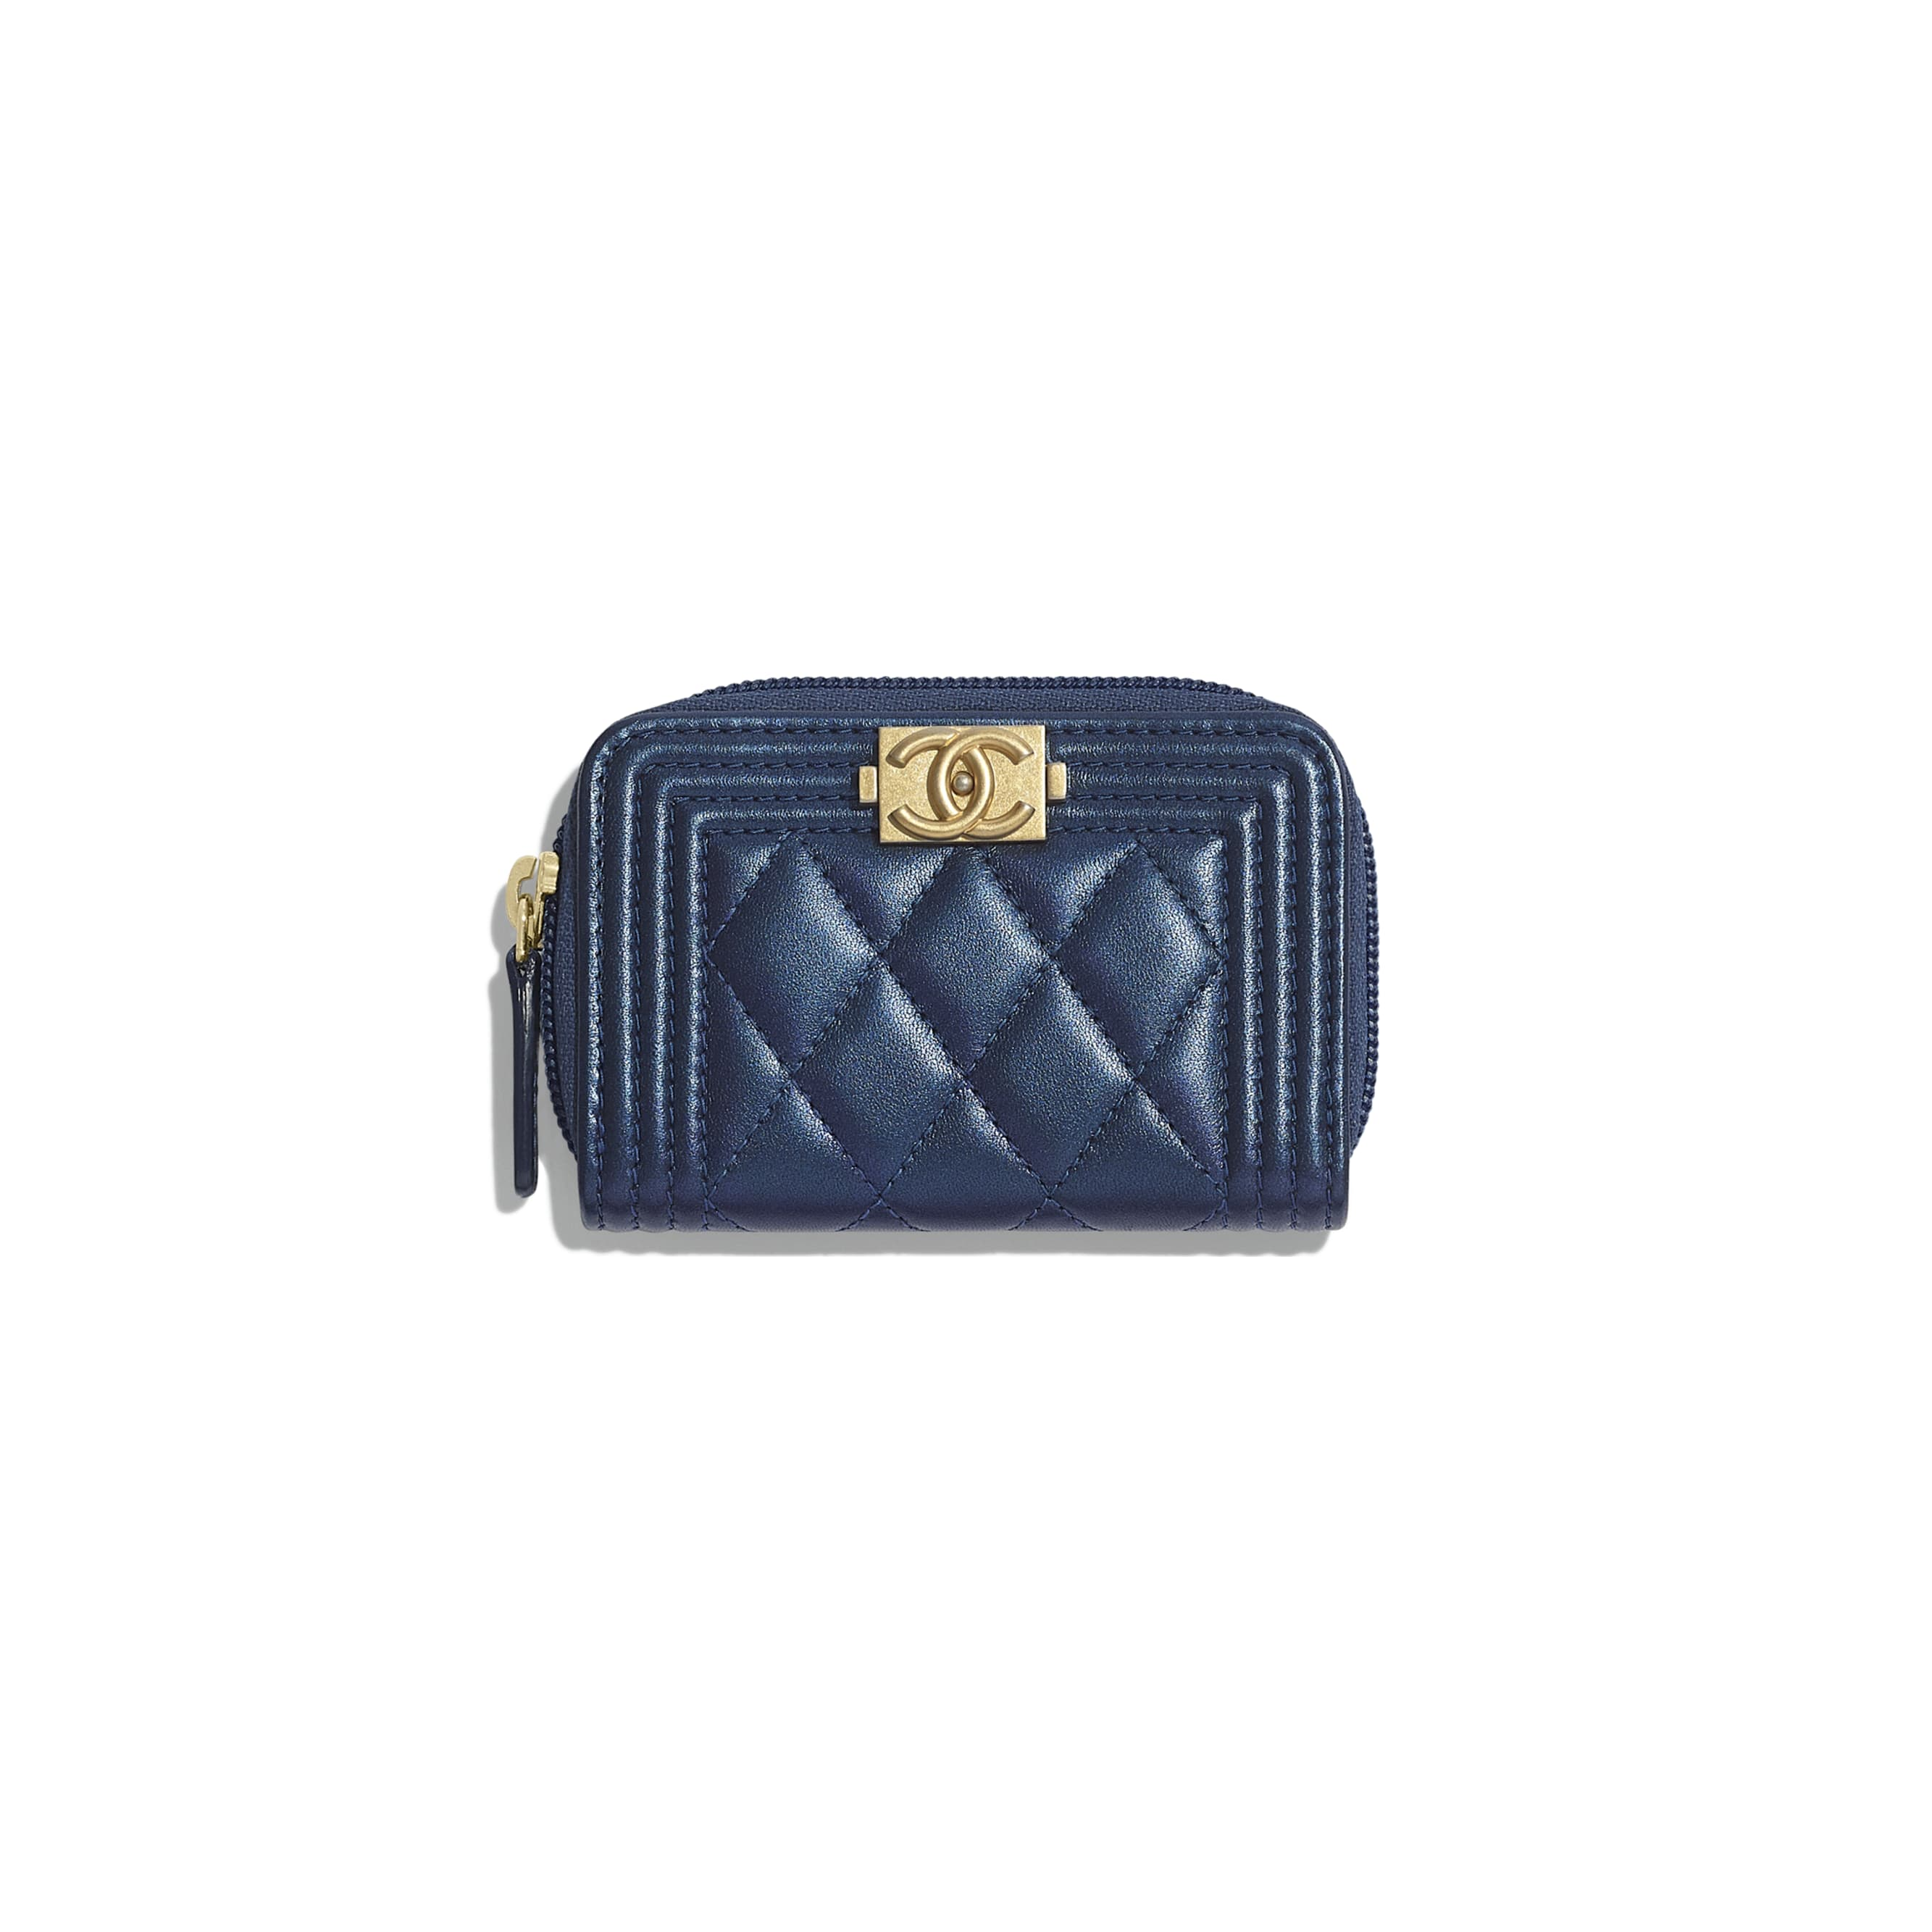 BOY CHANEL Zipped Coin Purse - Navy Blue - Metallic Lambskin & Gold Metal - CHANEL - Default view - see standard sized version